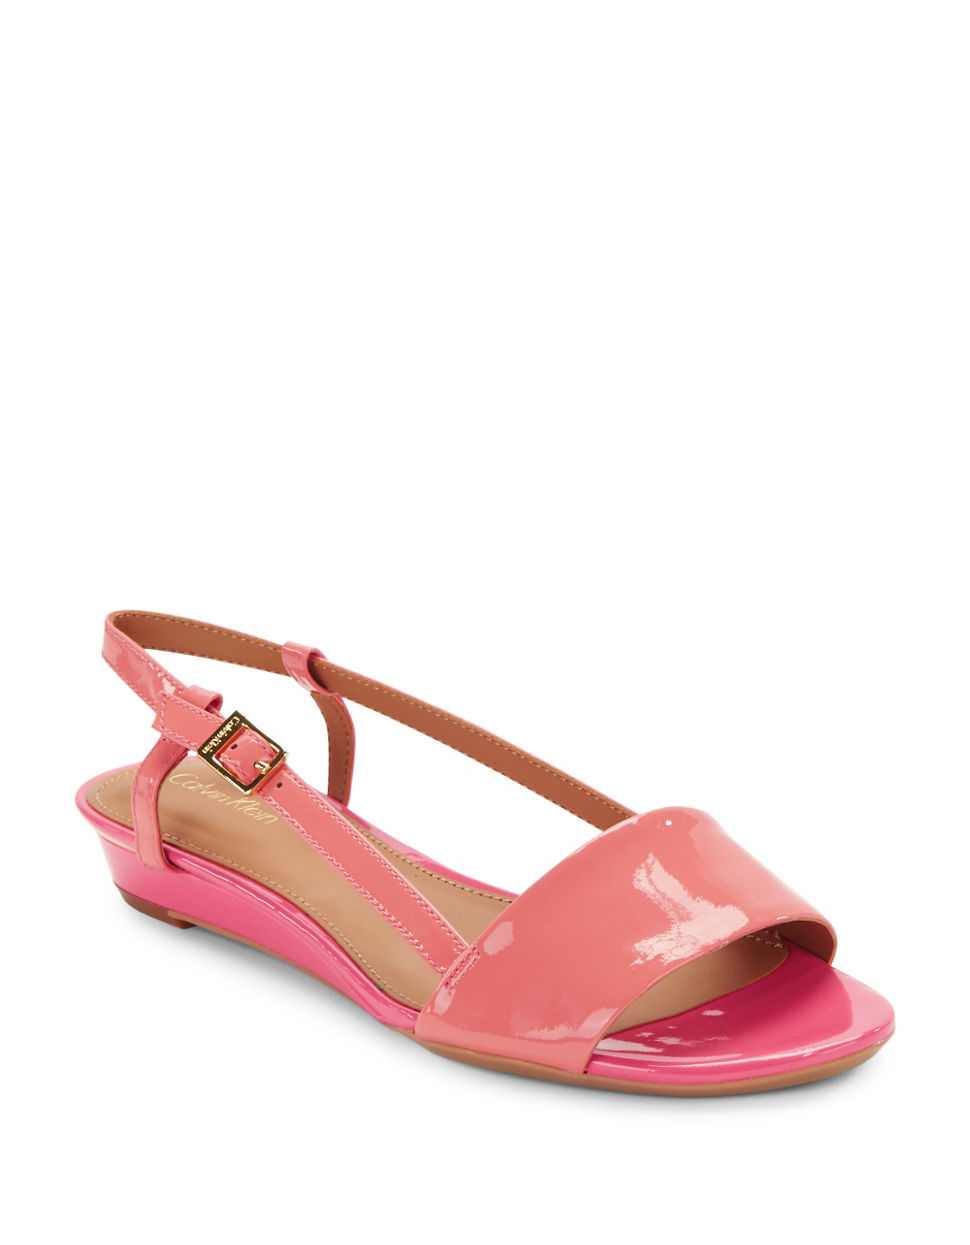 Lyst Calvin Klein Prima Patent Leather Slingback Sandals